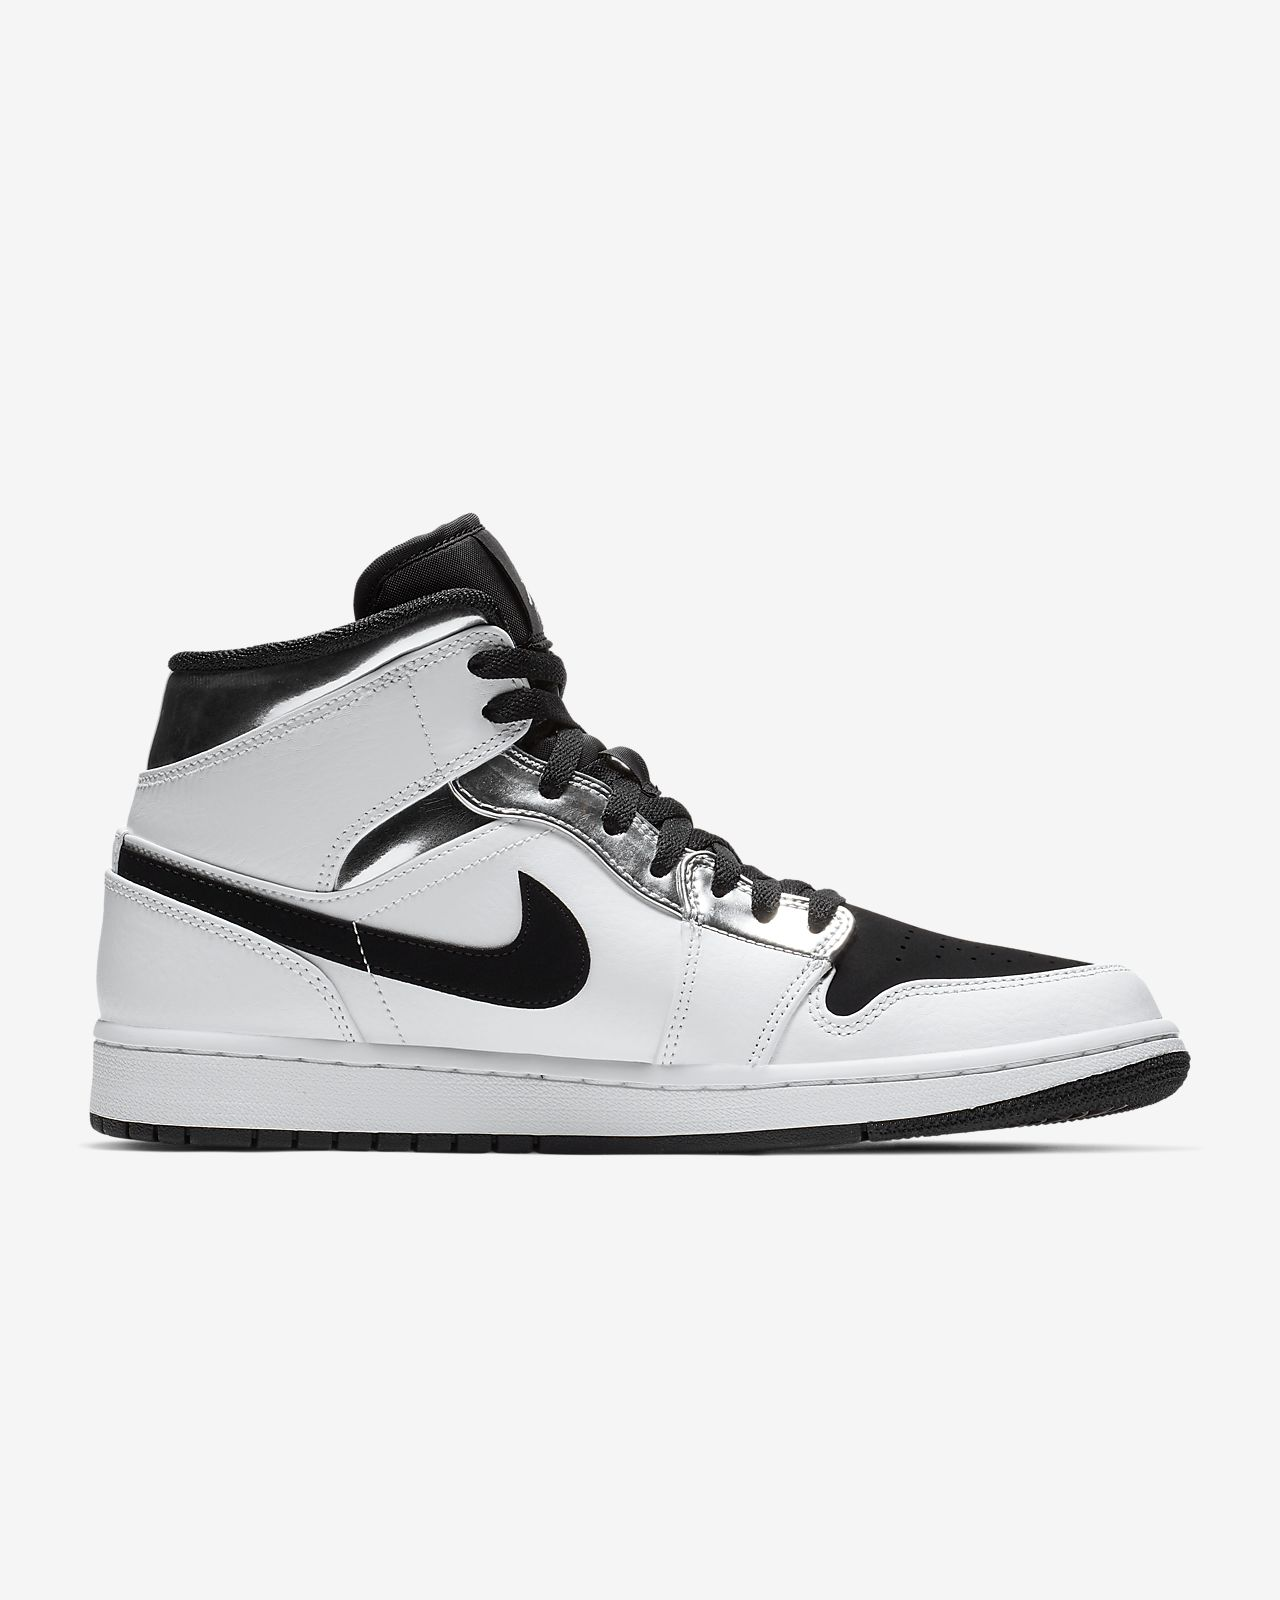 24e1ea1a003e7a Air Jordan 1 Mid Men s Shoe. Nike.com